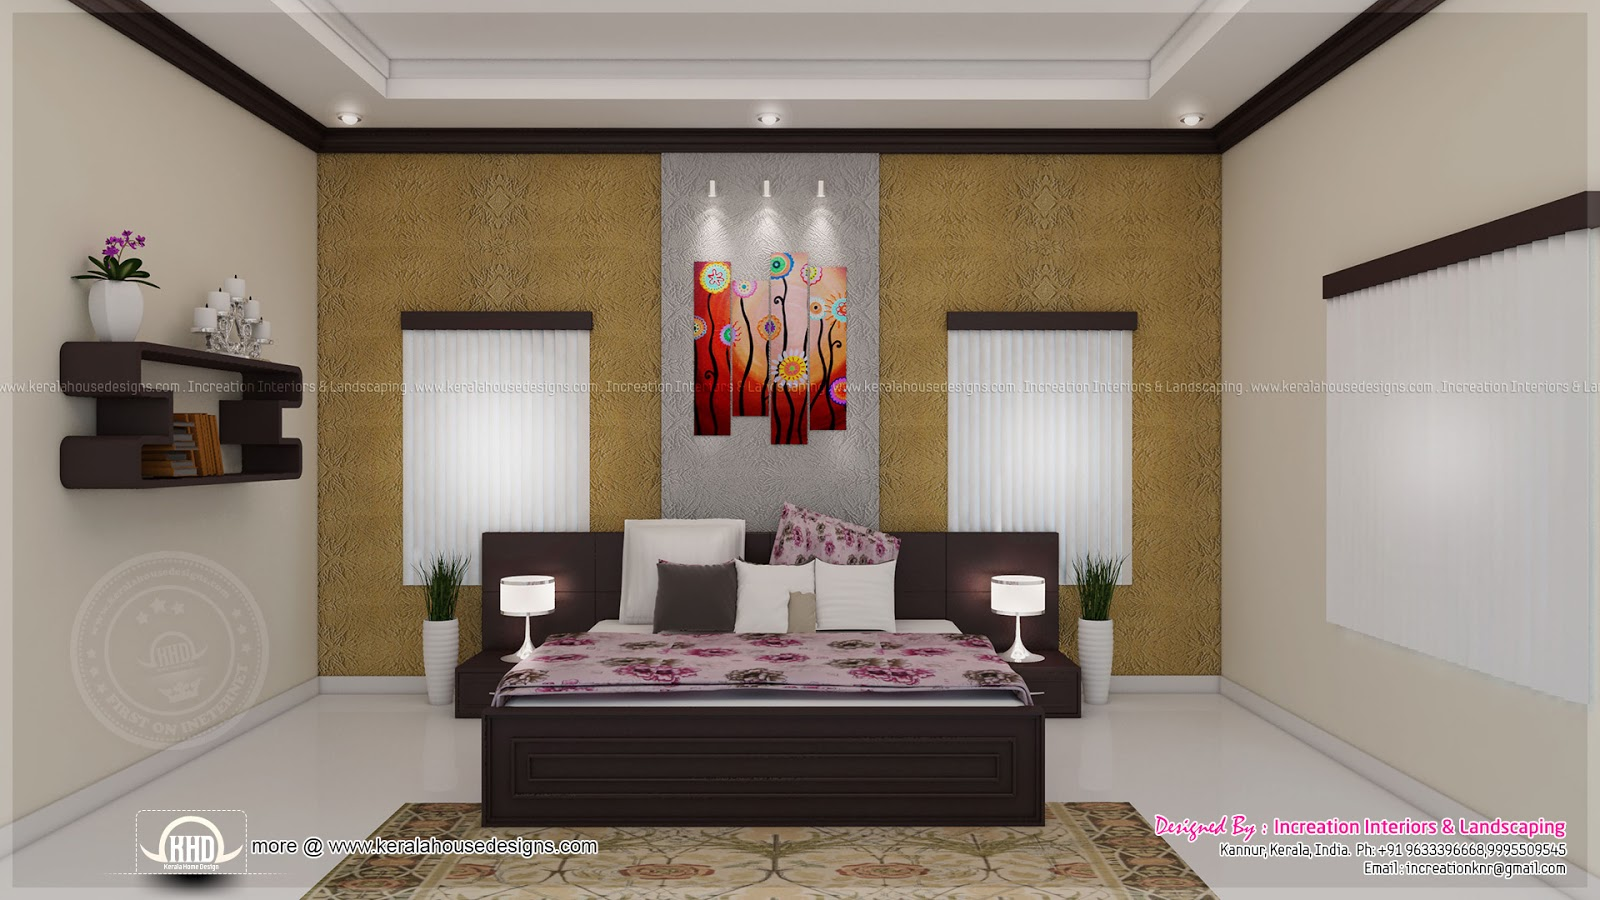 House interior ideas in 3d rendering kerala home design and floor plans Interior design ideas for selling houses